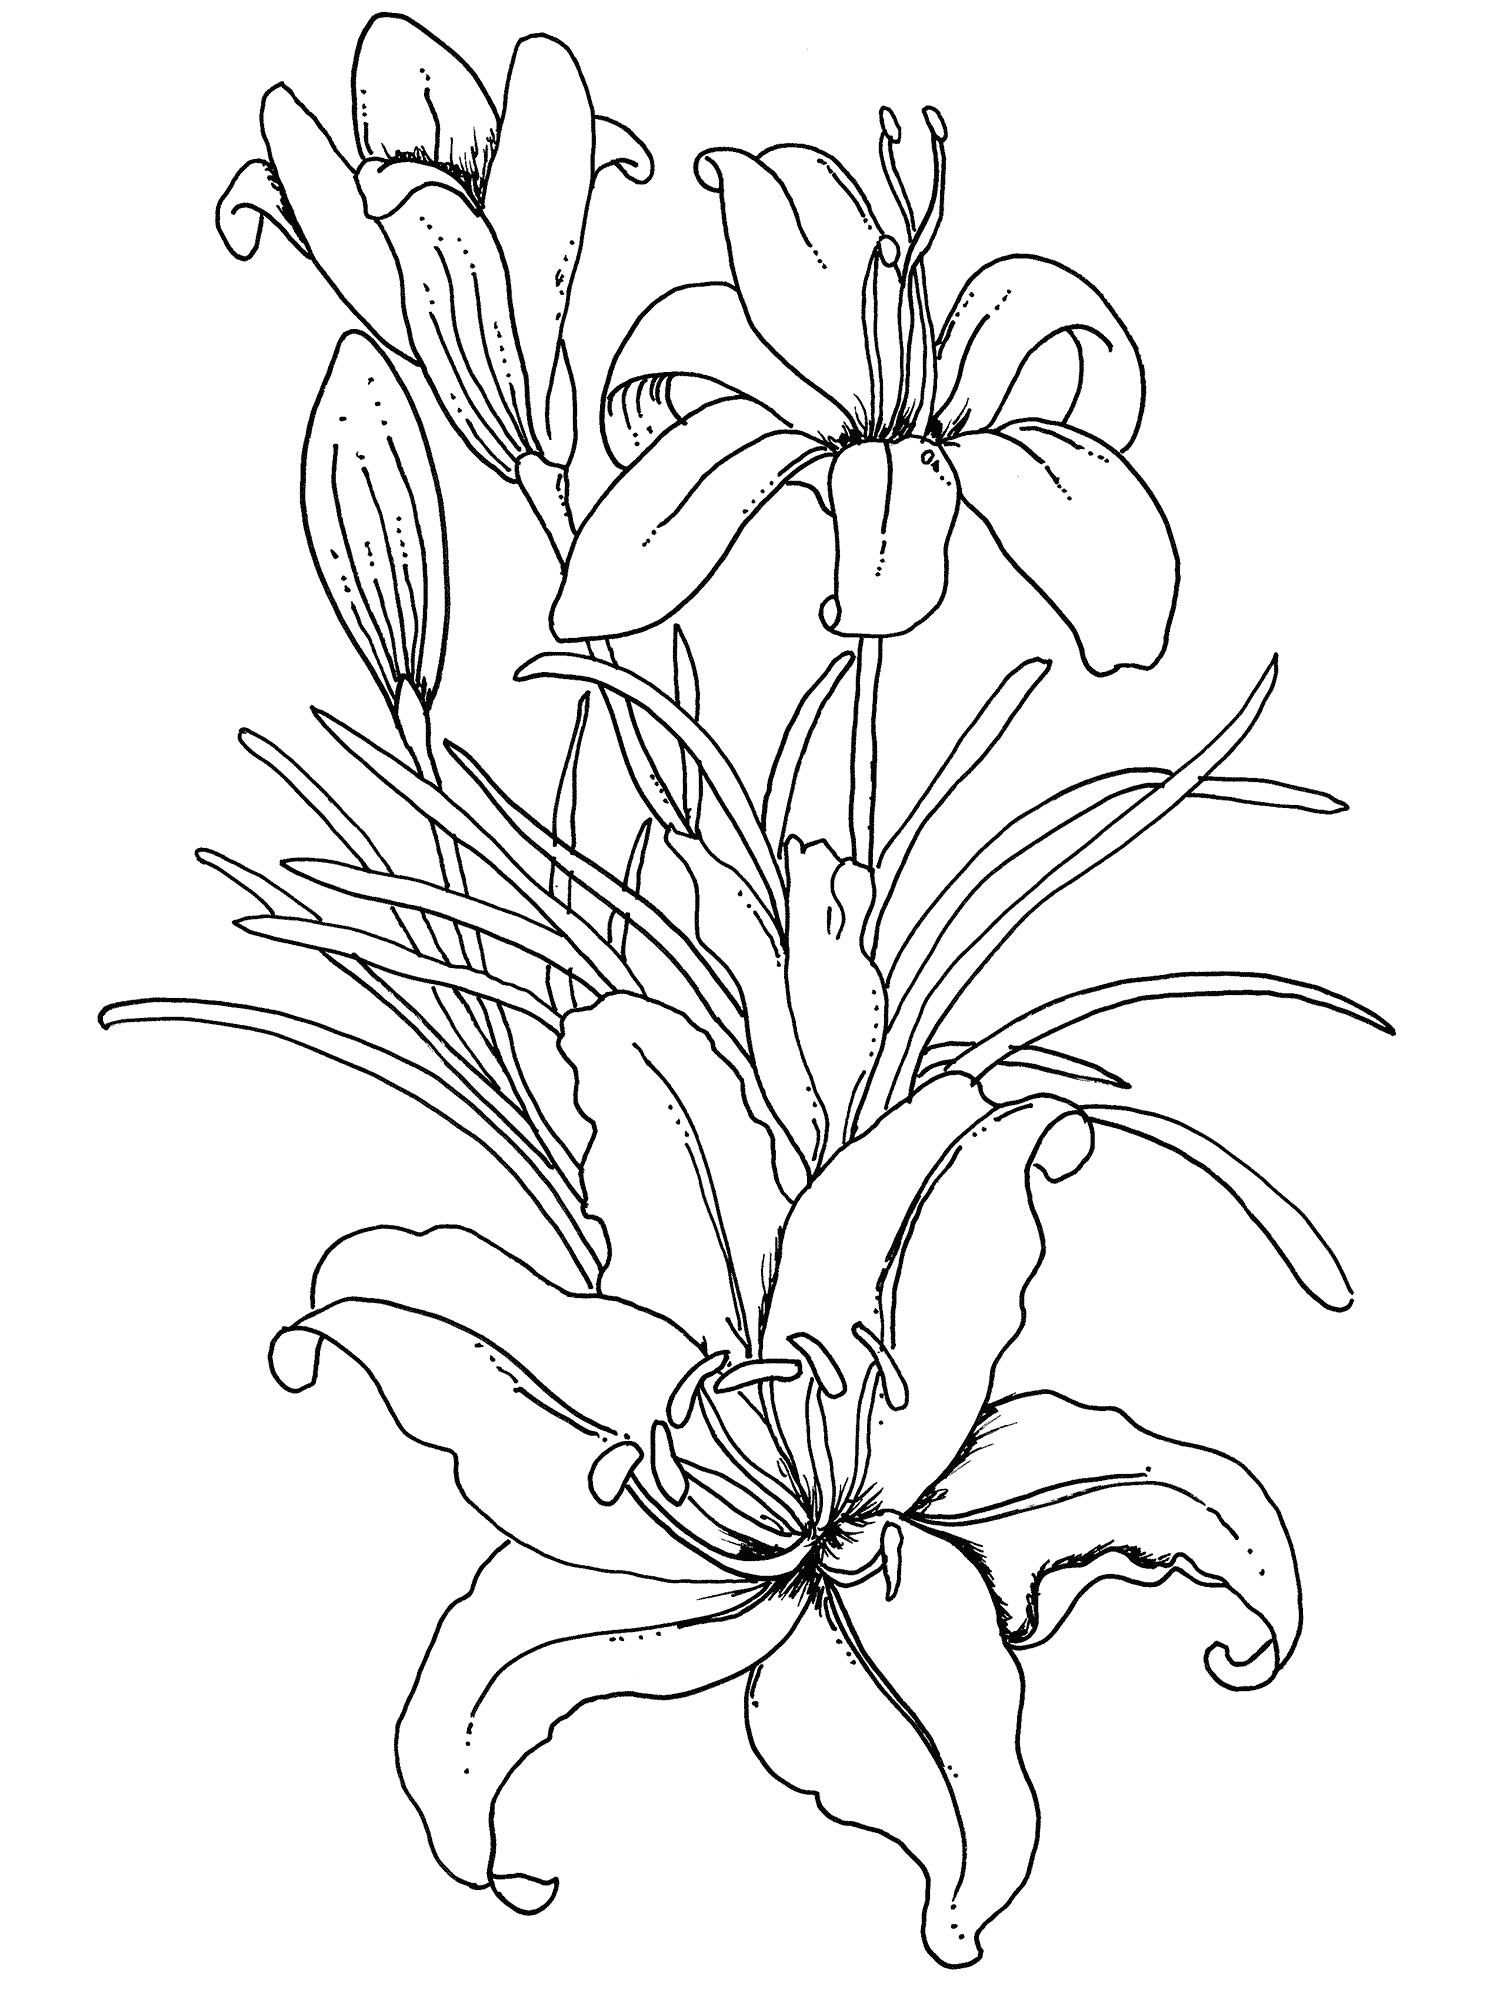 Adult Coloring Books Flowers Flower coloring pages